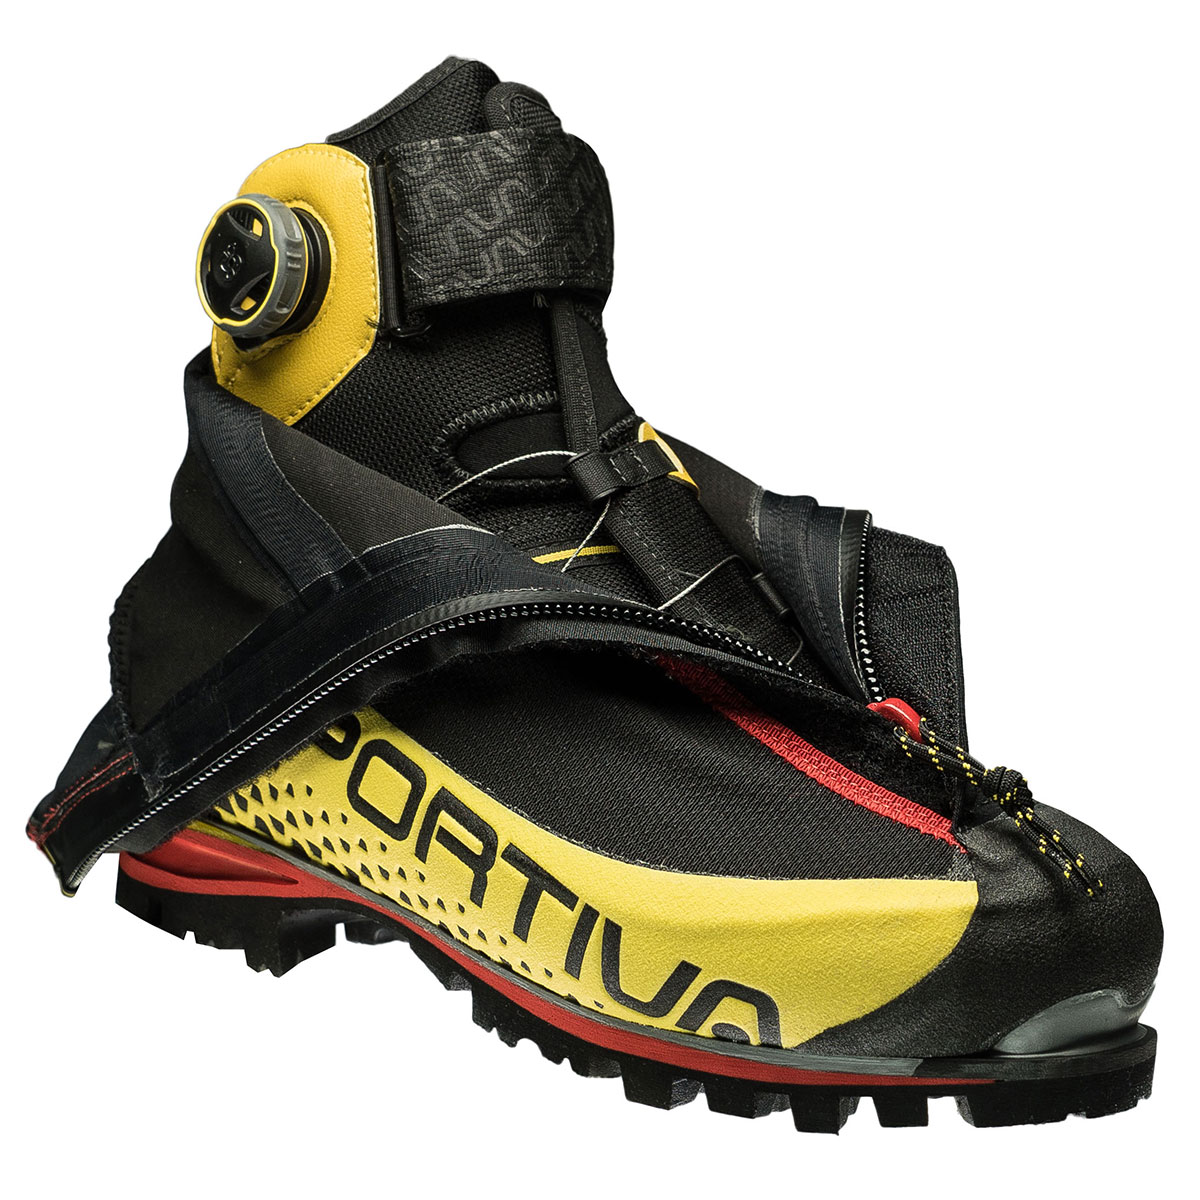 The La Sportiva G5 Boa Fit mountaineering shoe: the Boa Fit System was built for mountaineering as if our lives depended on it – delivering superior heel hold and stability, secure comfort, and effortless precision in bitter, biting conditions.